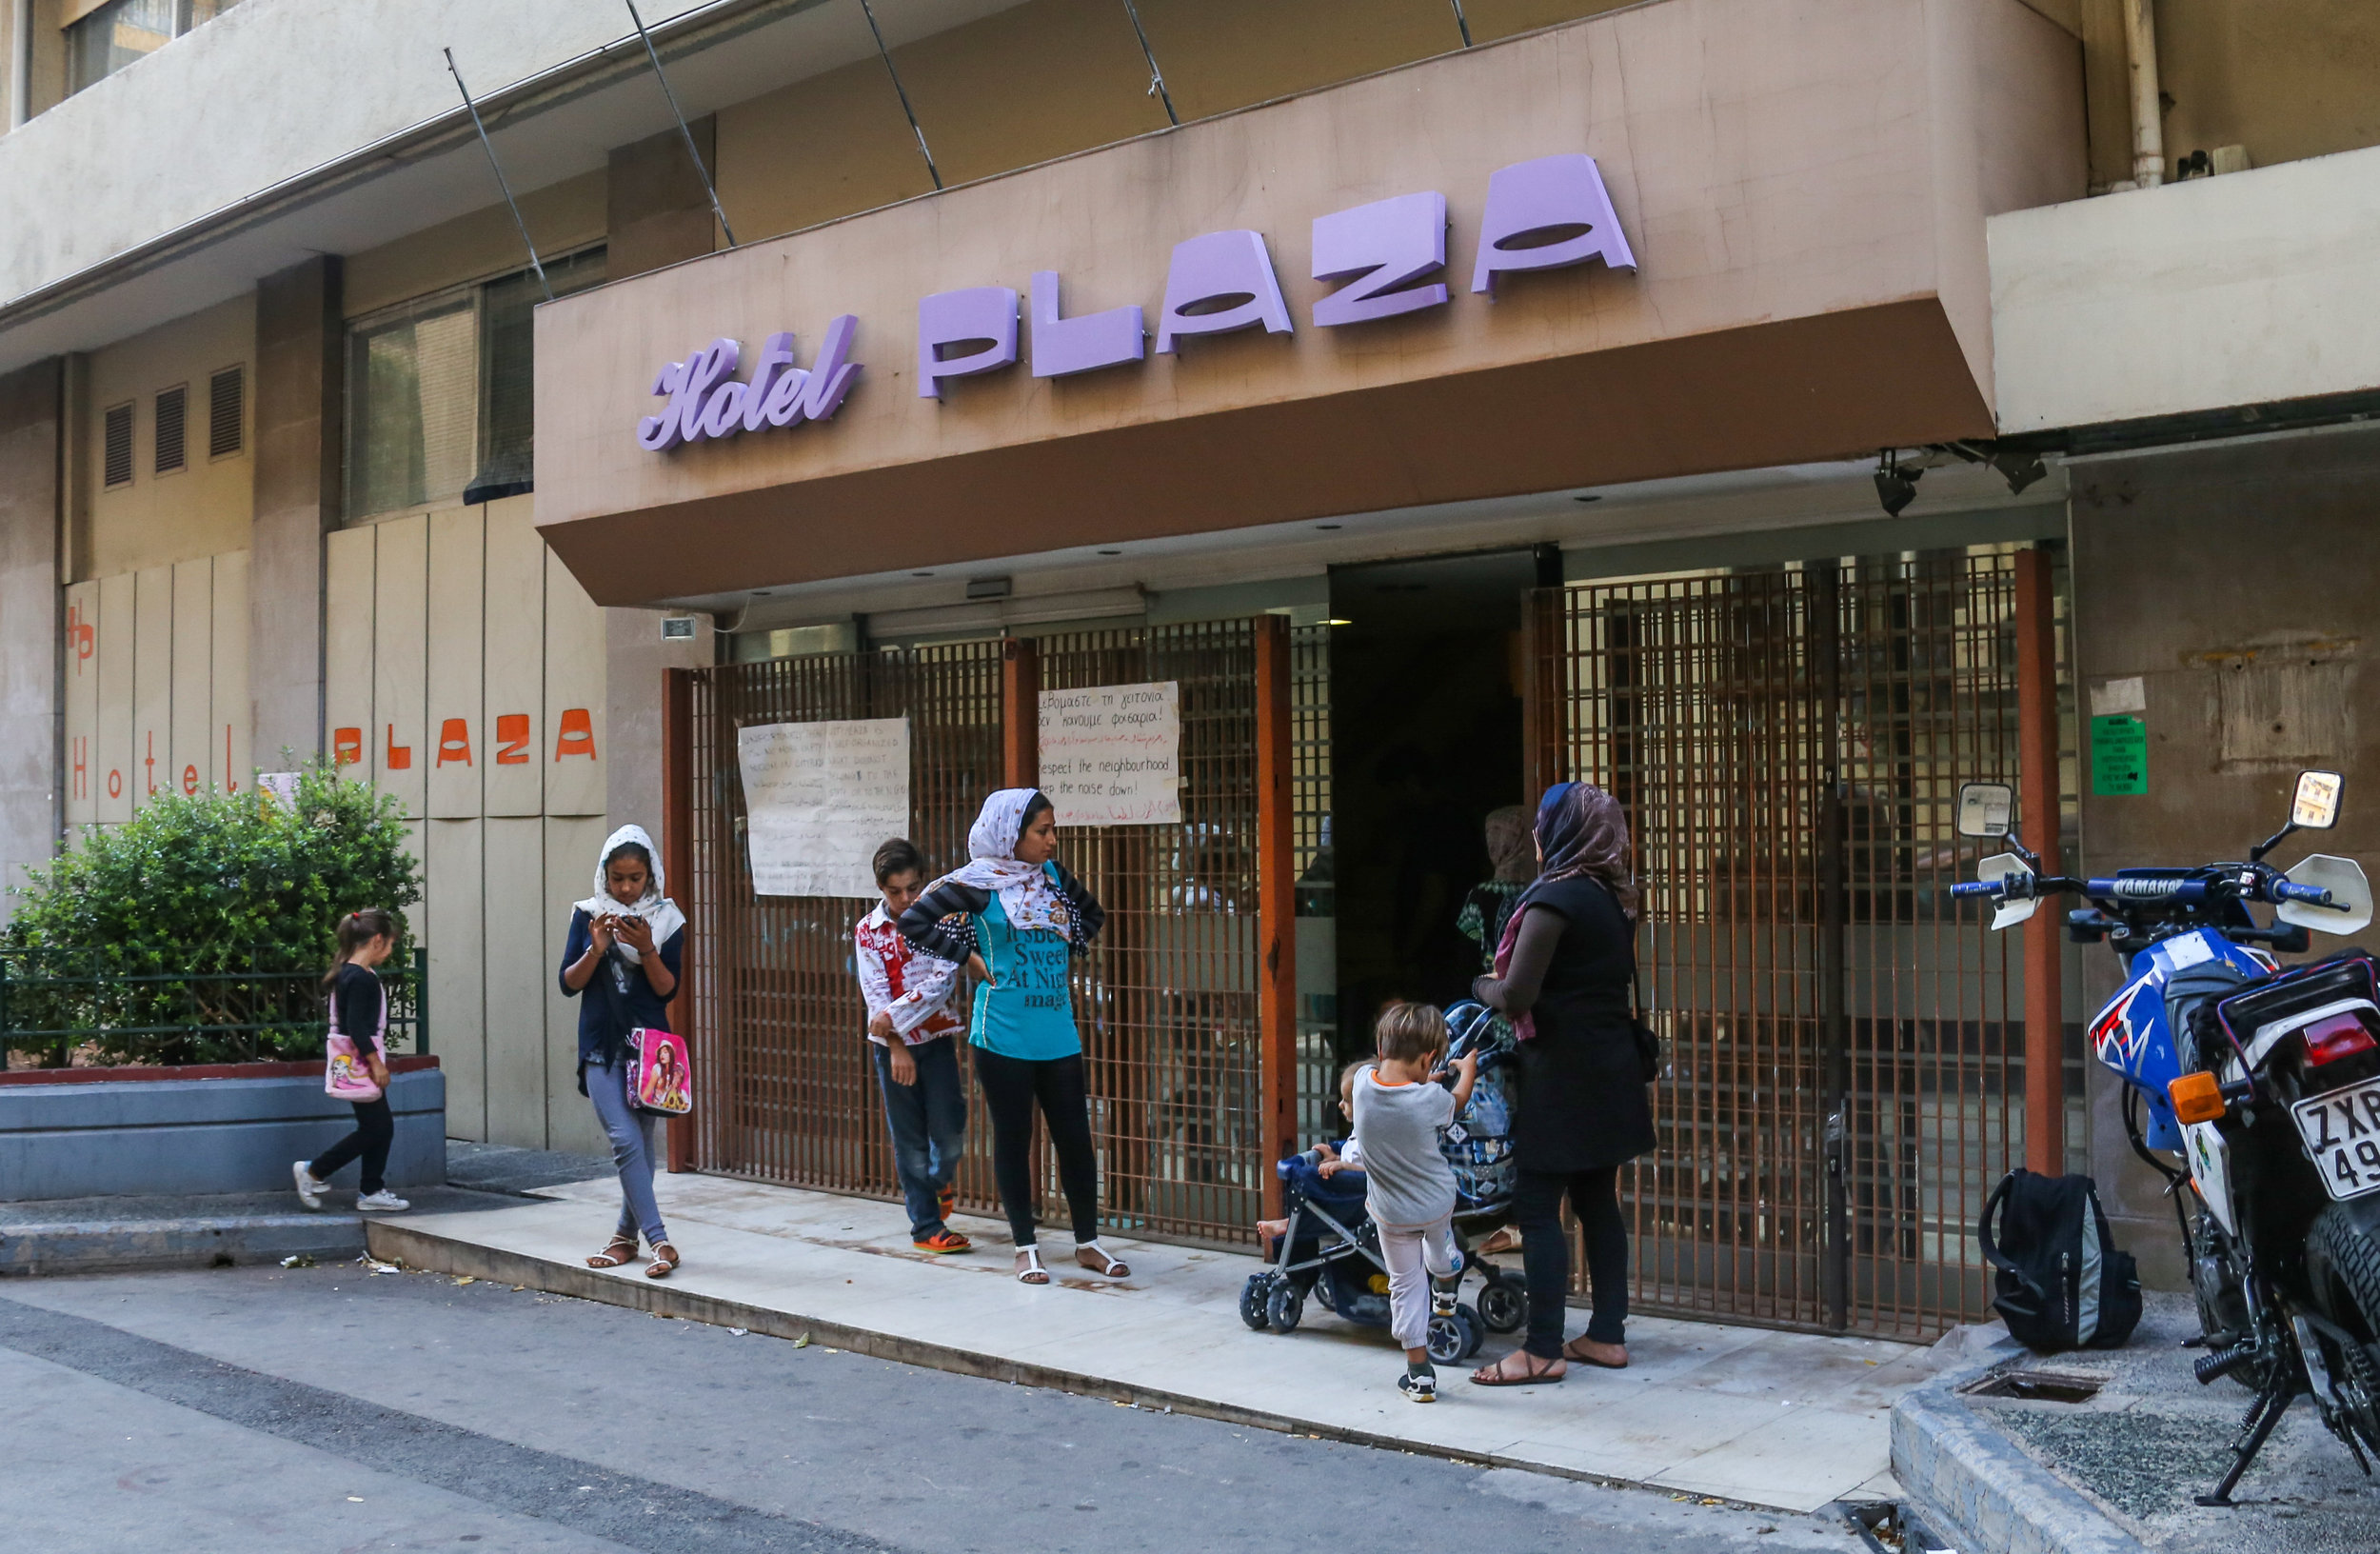 09/24/16 - 2:00pm: Mothers and their children stand outside while the lobby of City Plaza Refugee squat is cleaned. The abandoned 7-story hotel now houses 400 migrants (180 of those children).